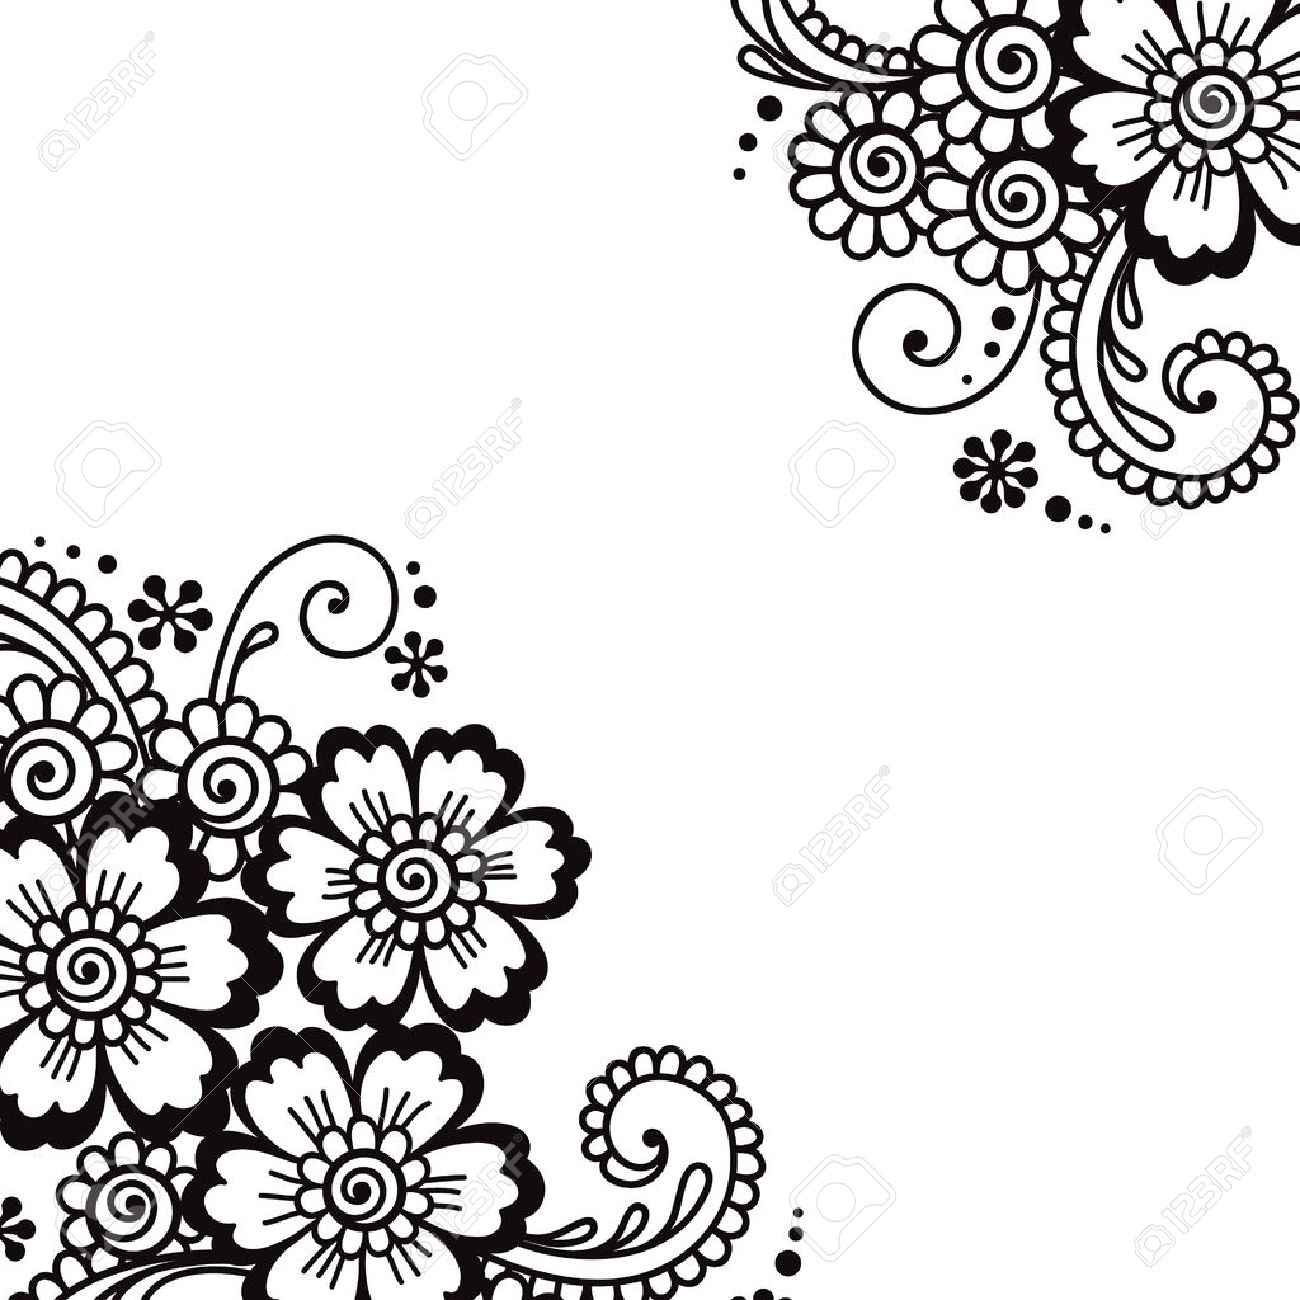 flower vector ornament corner royalty free cliparts vectors and stock illustration image 40271044 flower vector ornament corner